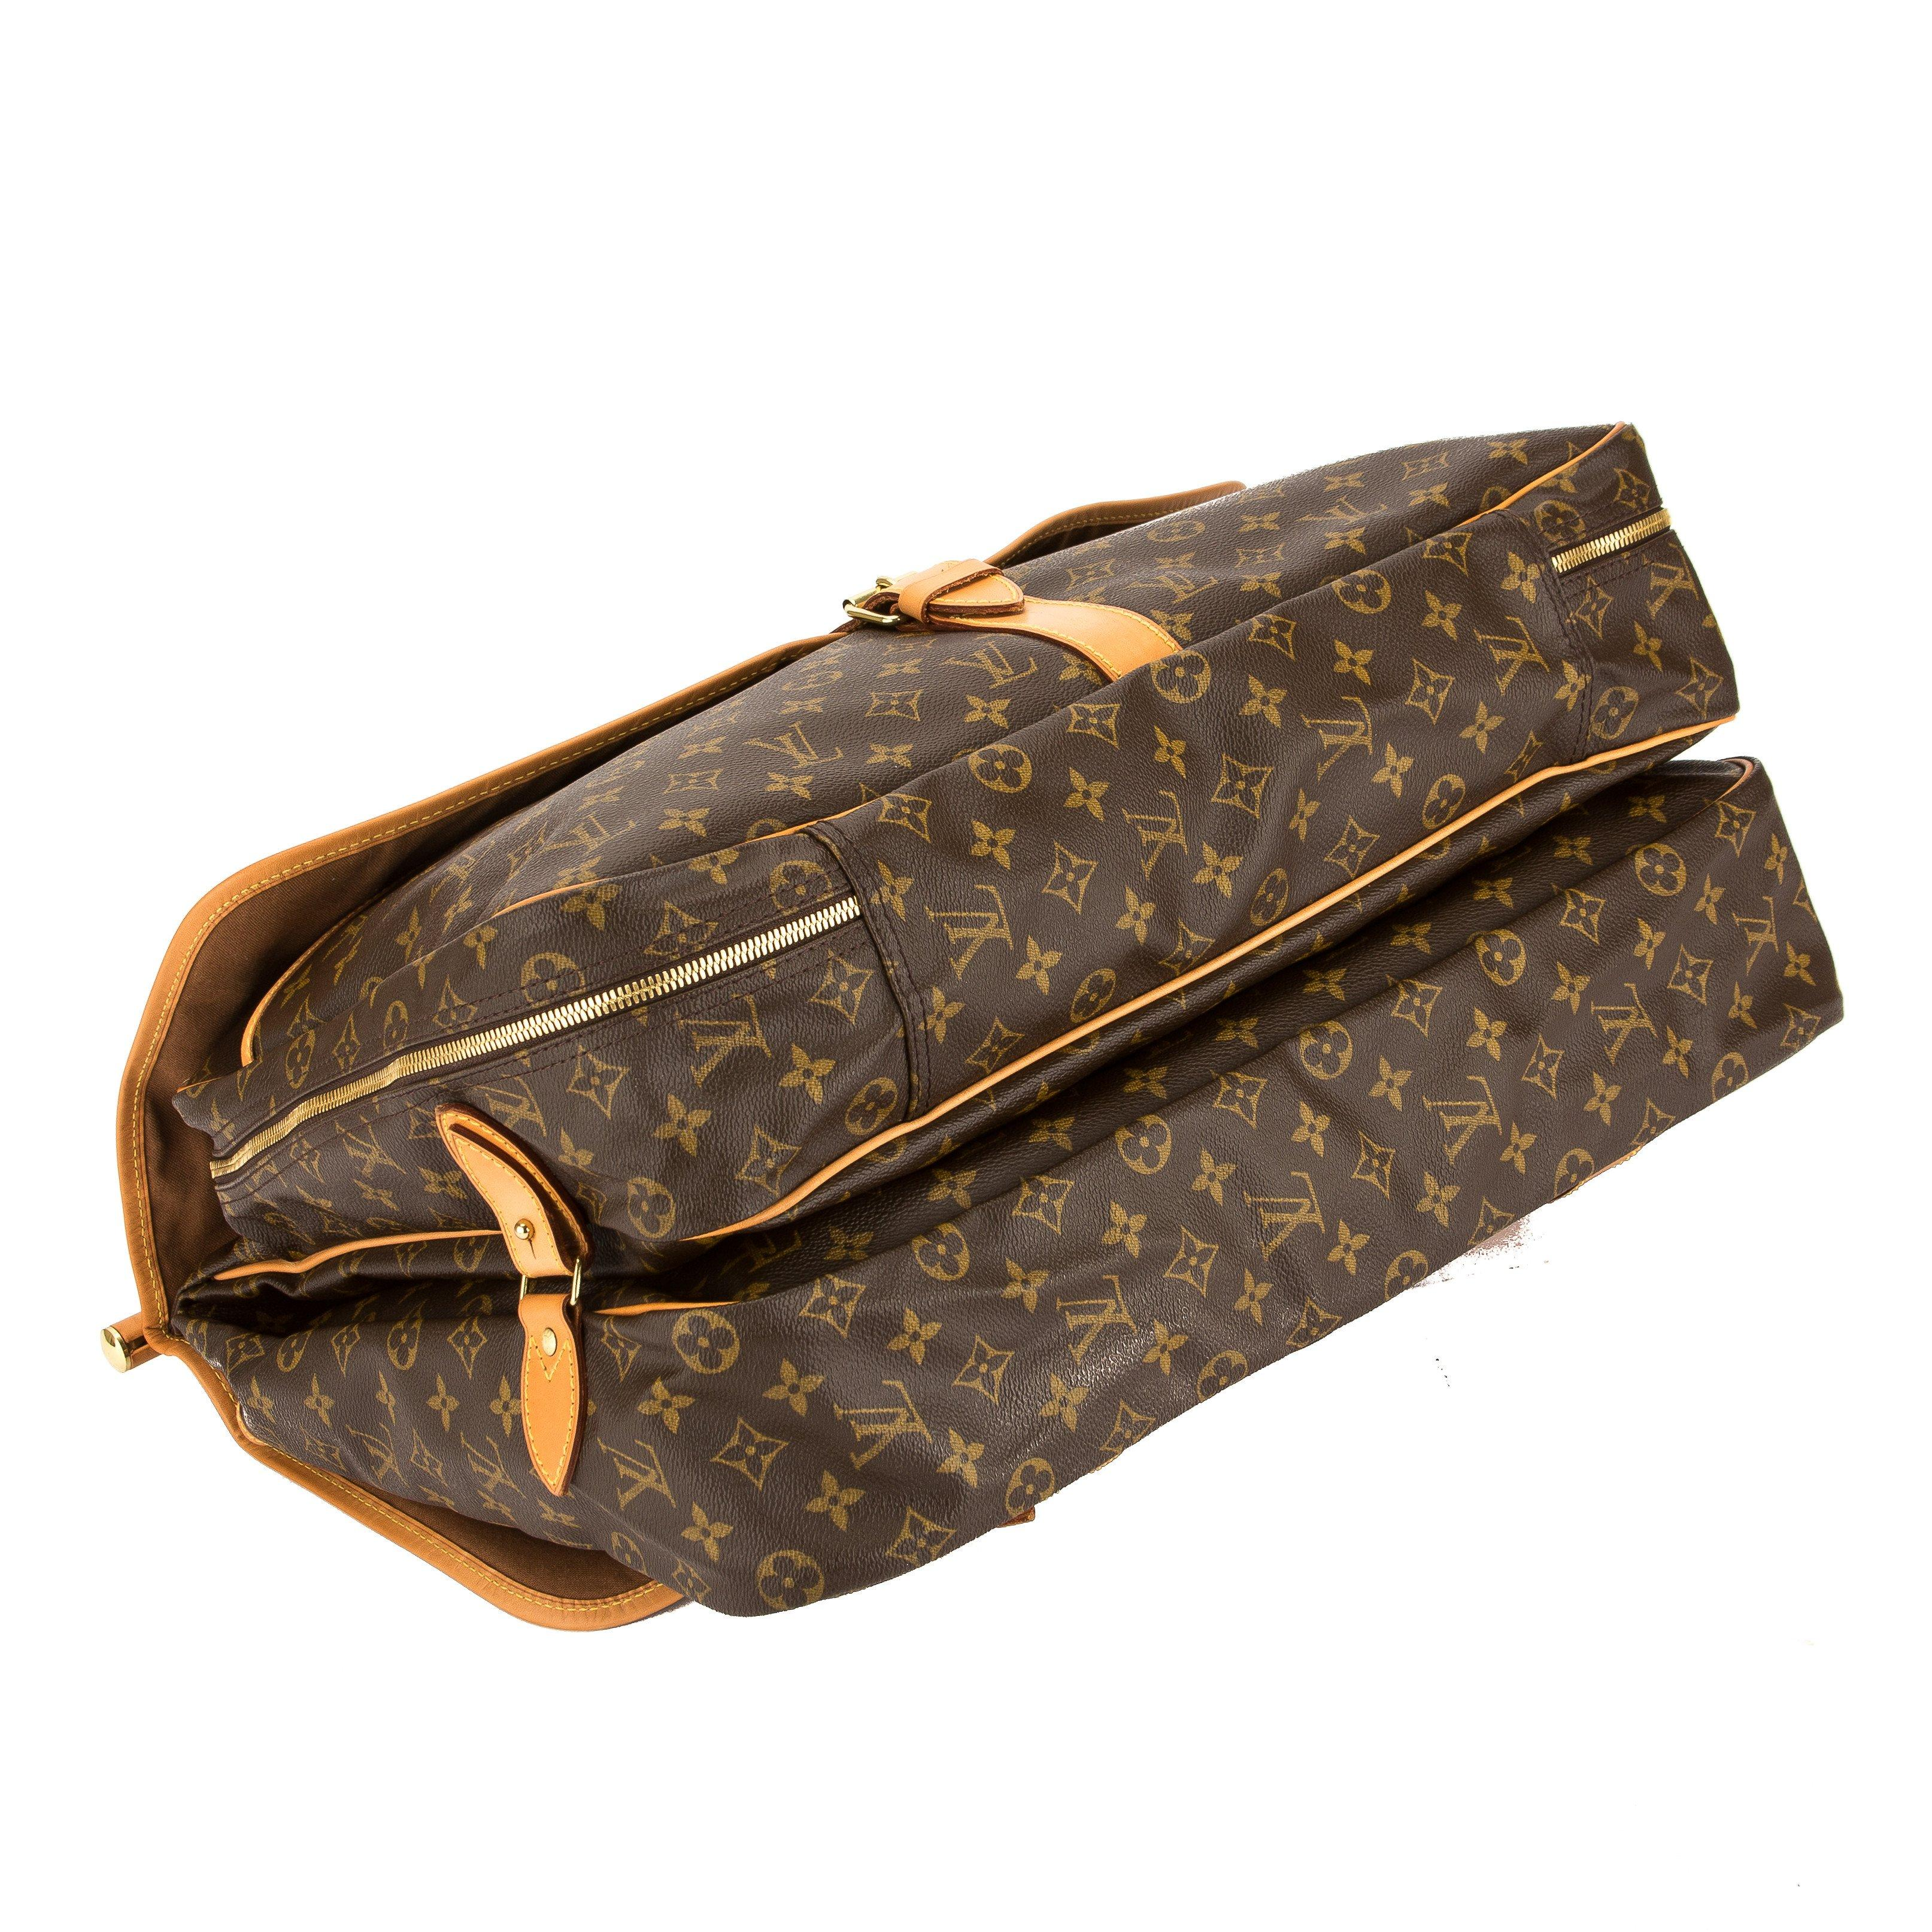 Luxury: Travel Bag From Louis Vuitton